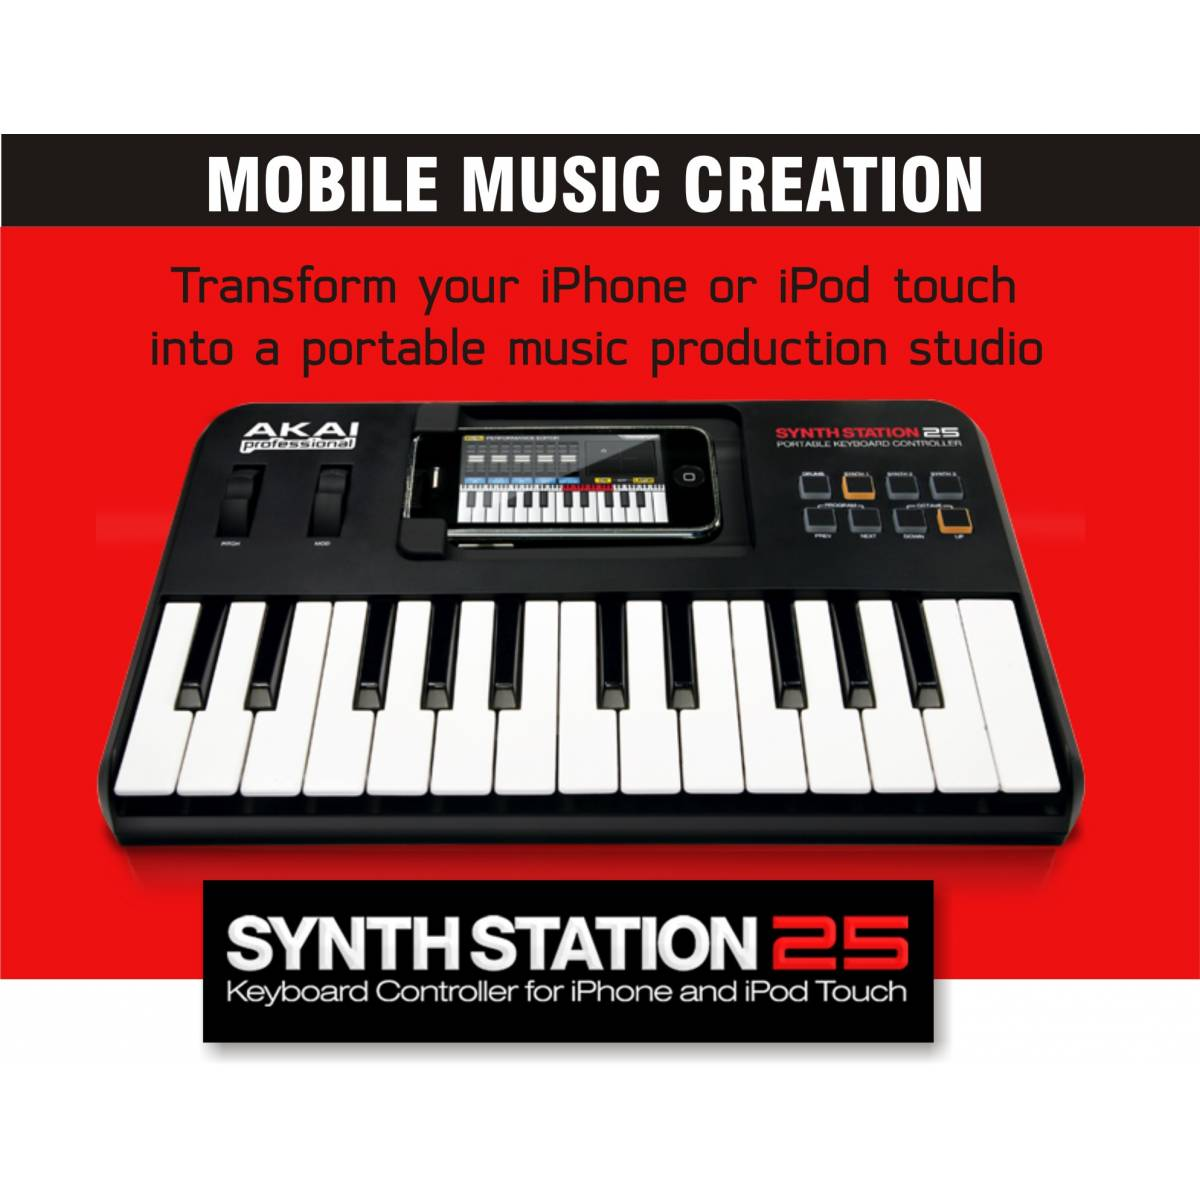 akai synthstation 25 keyboard for iphone and ipod touch 25 key midi keyboard from inta audio uk. Black Bedroom Furniture Sets. Home Design Ideas